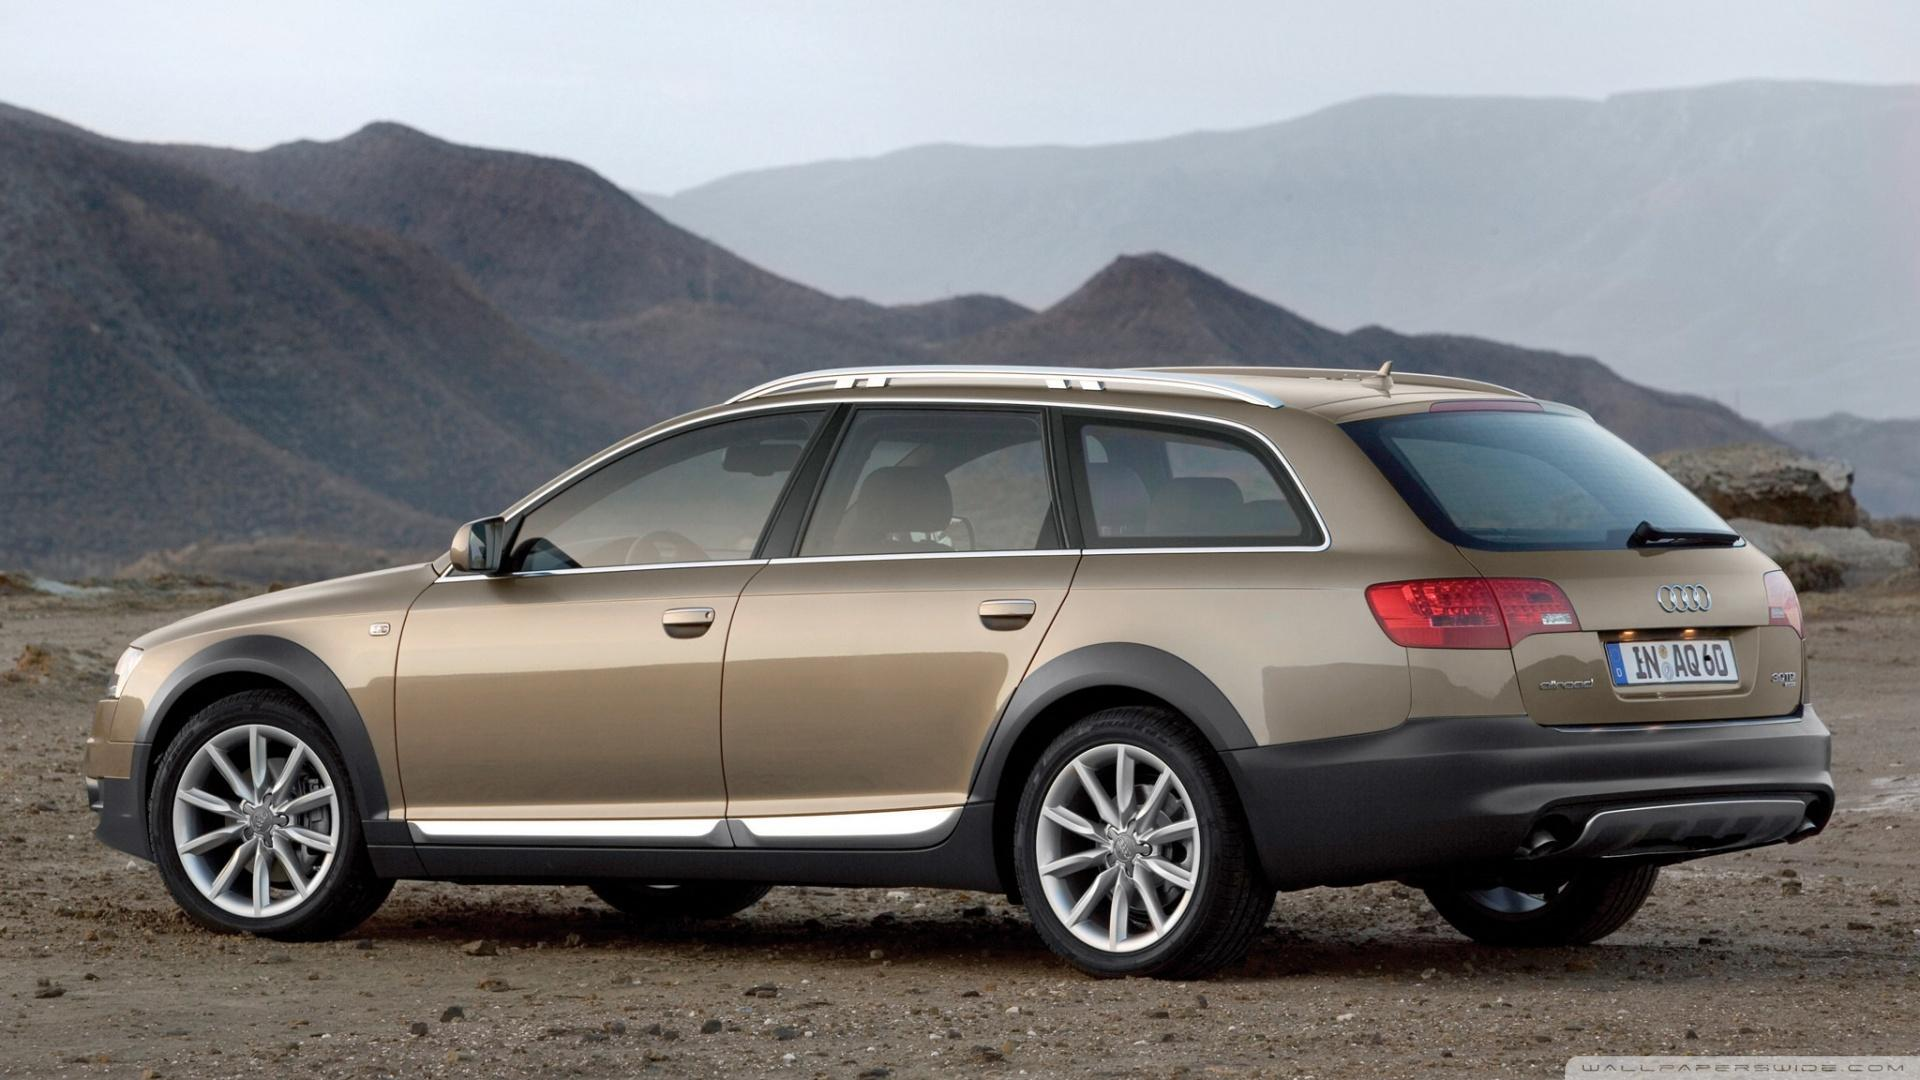 Audi A6 Allroad 3.0 TDI Quattro Car 11 ❤ 4K HD Desktop Wallpaper ...